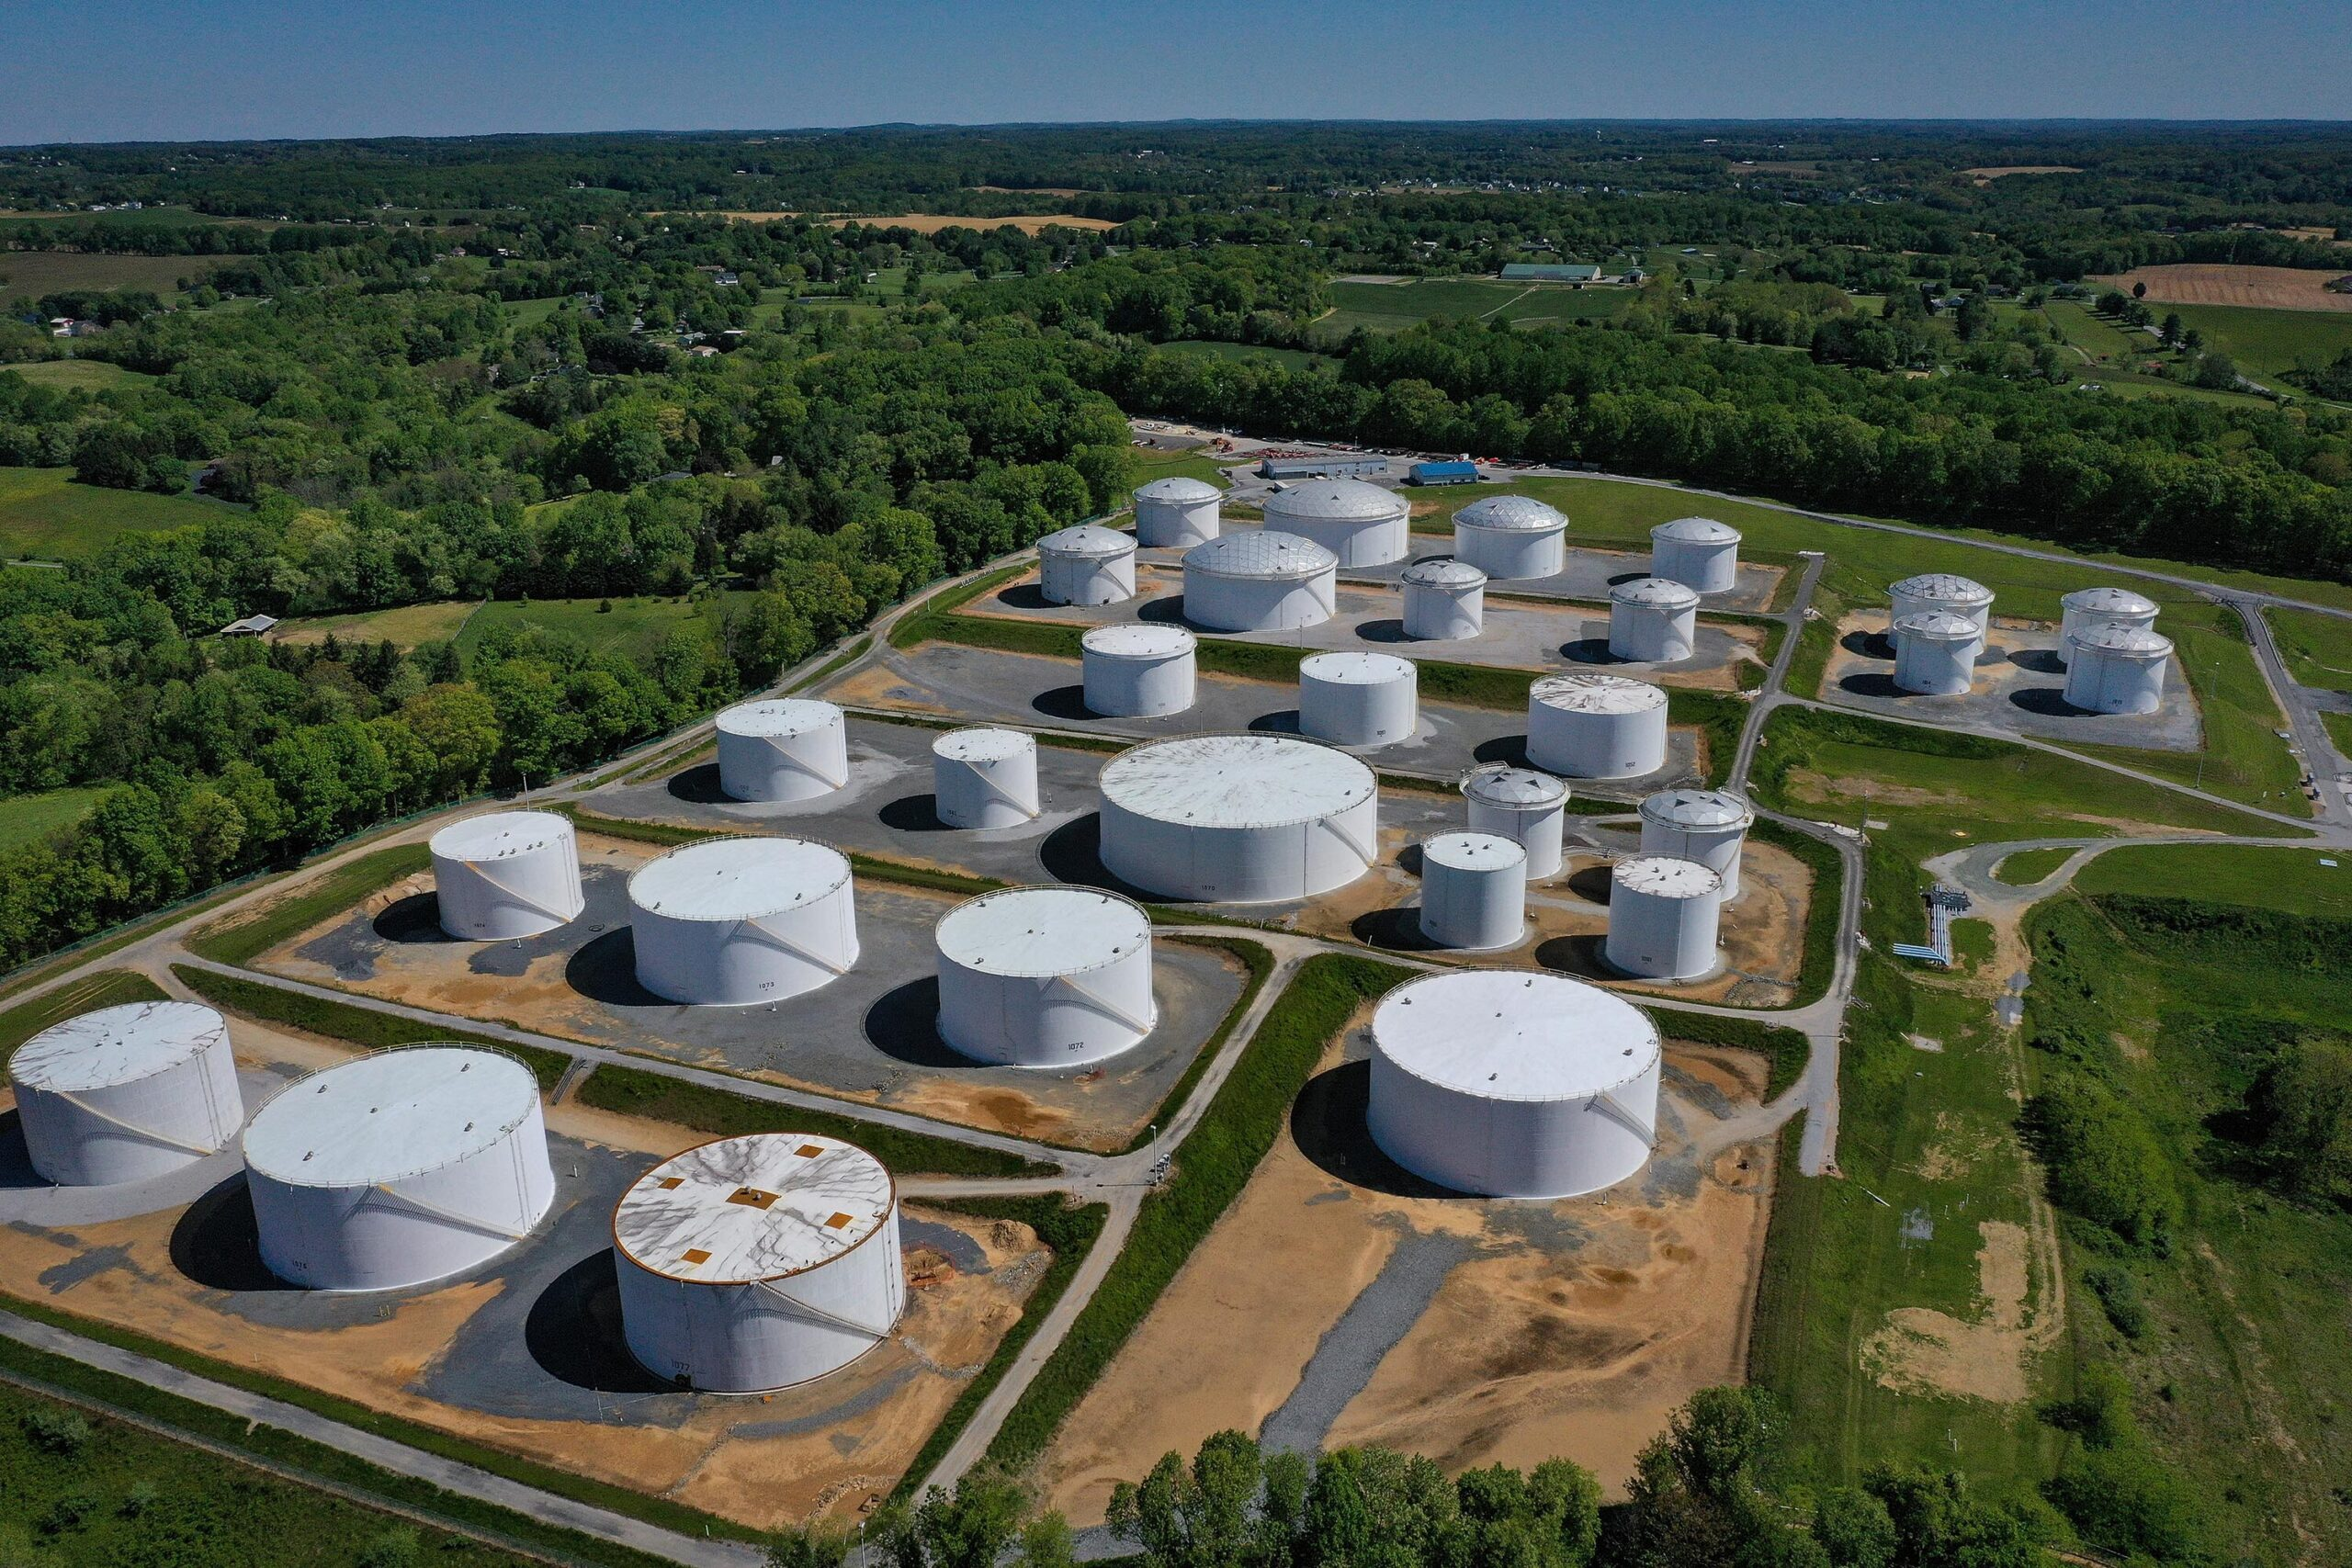 <i>Drew Angerer/Getty Images</i><br/>Critical pipeline operators have reported more than 220 cybersecurity incidents since the Transportation Security Administration implemented emergency measures in the wake of the crippling ransomware attack on one of America's most important pipelines